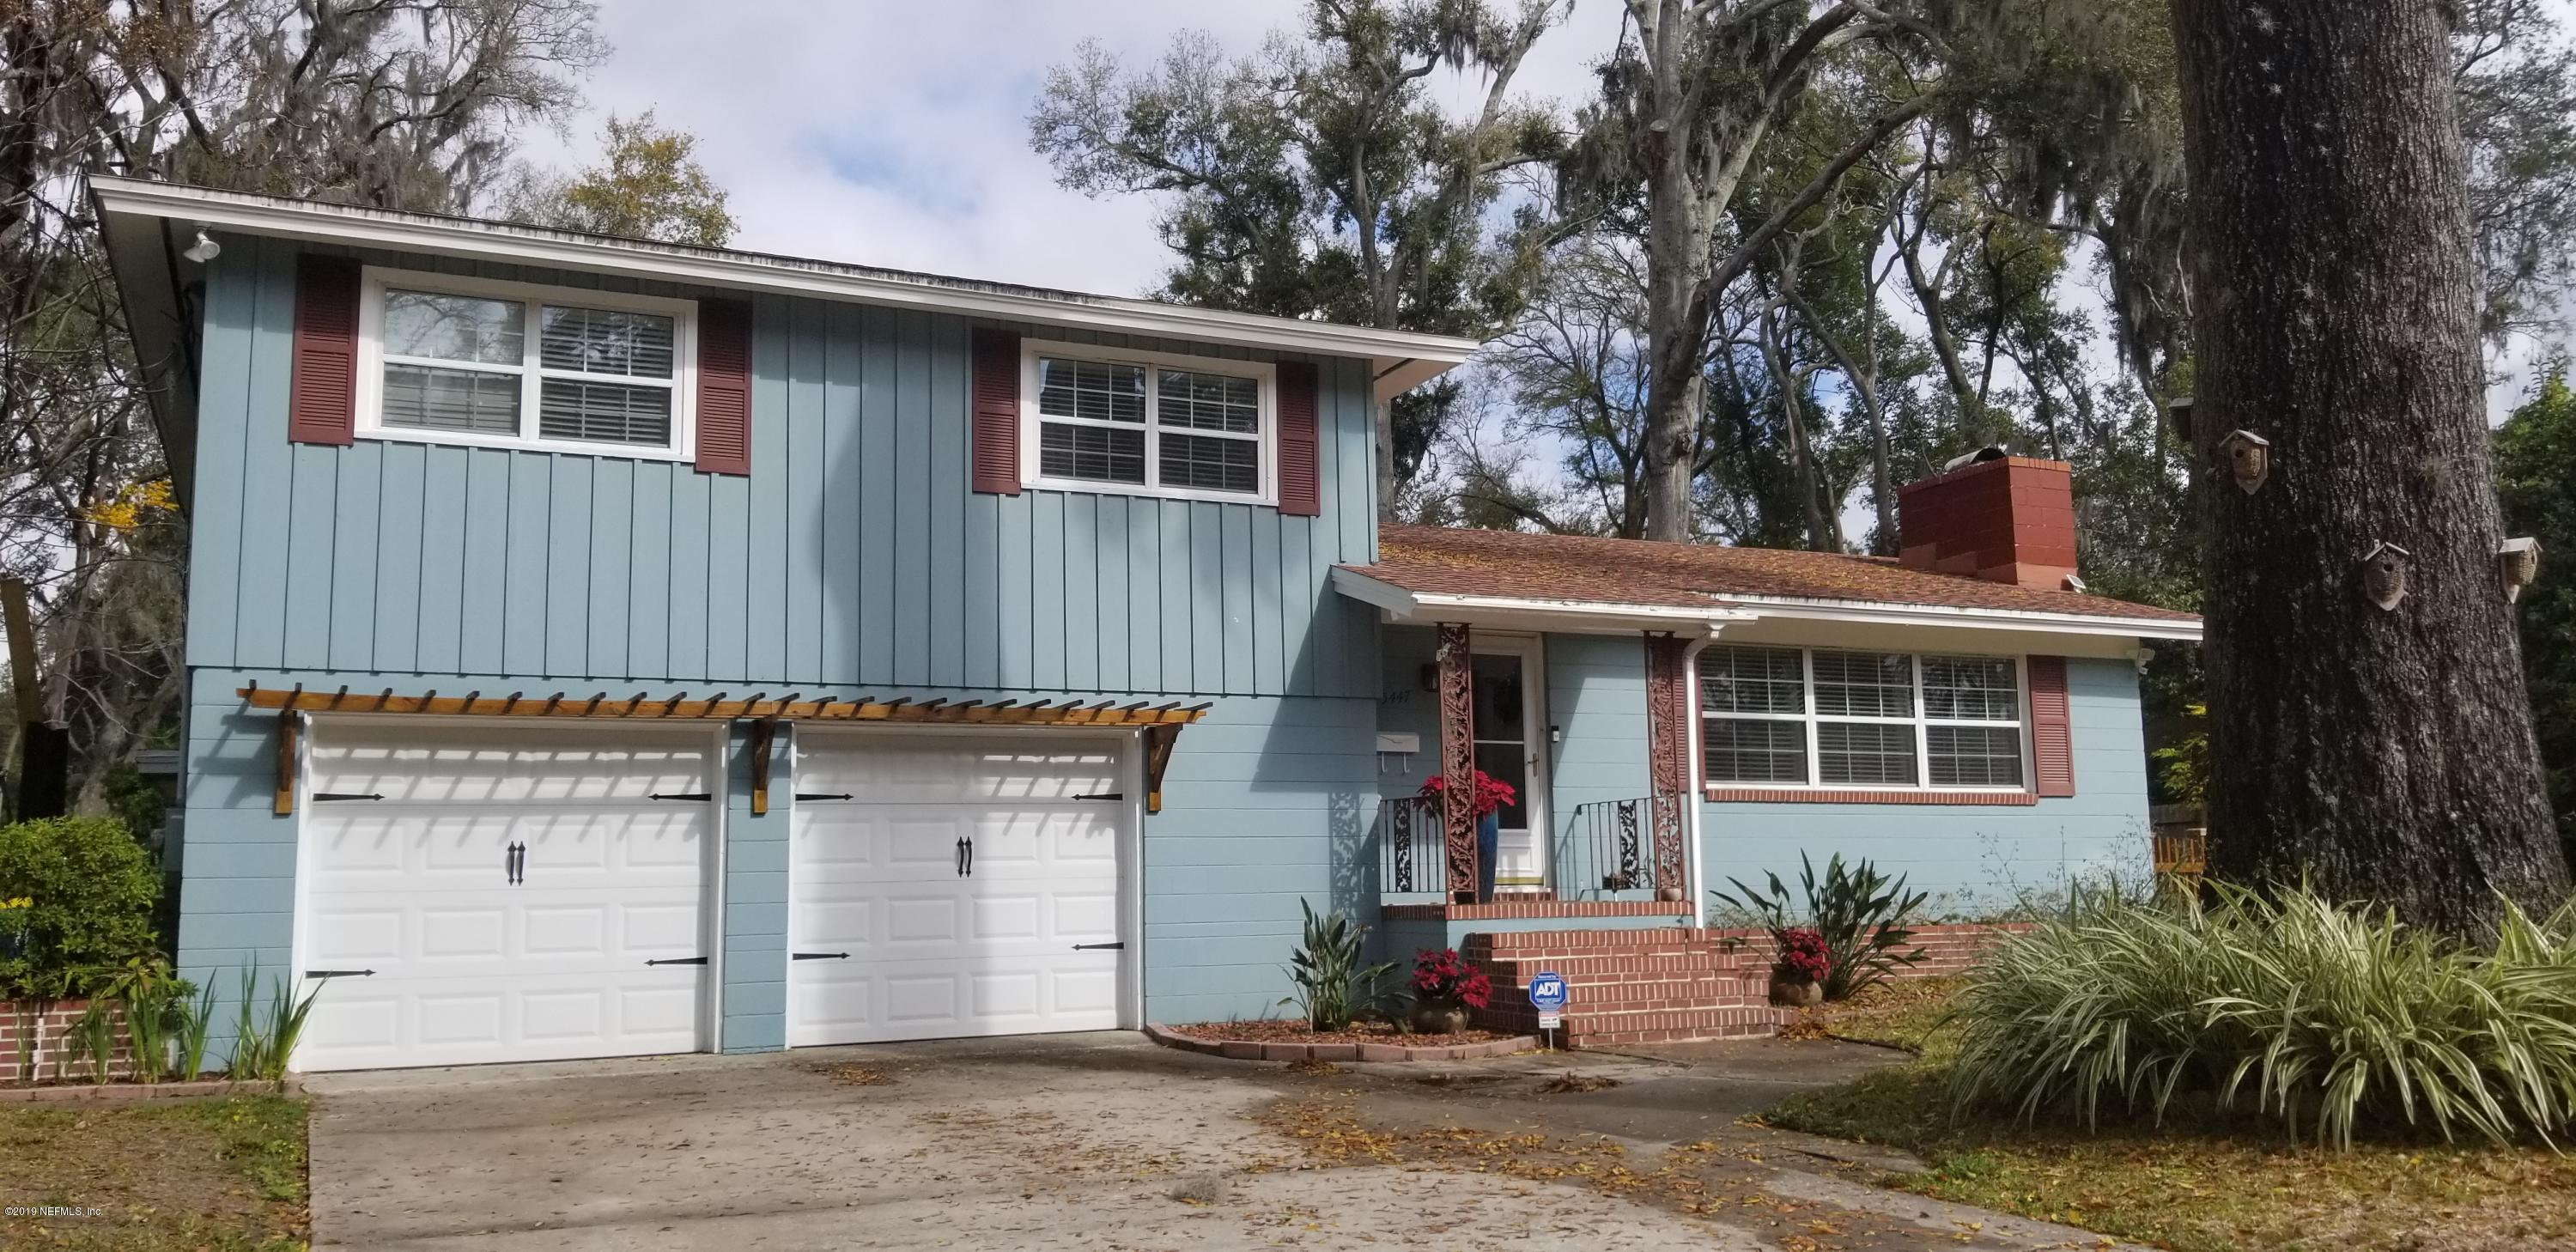 5447 SELTON, JACKSONVILLE, FLORIDA 32277, 3 Bedrooms Bedrooms, ,2 BathroomsBathrooms,Residential - single family,For sale,SELTON,979923